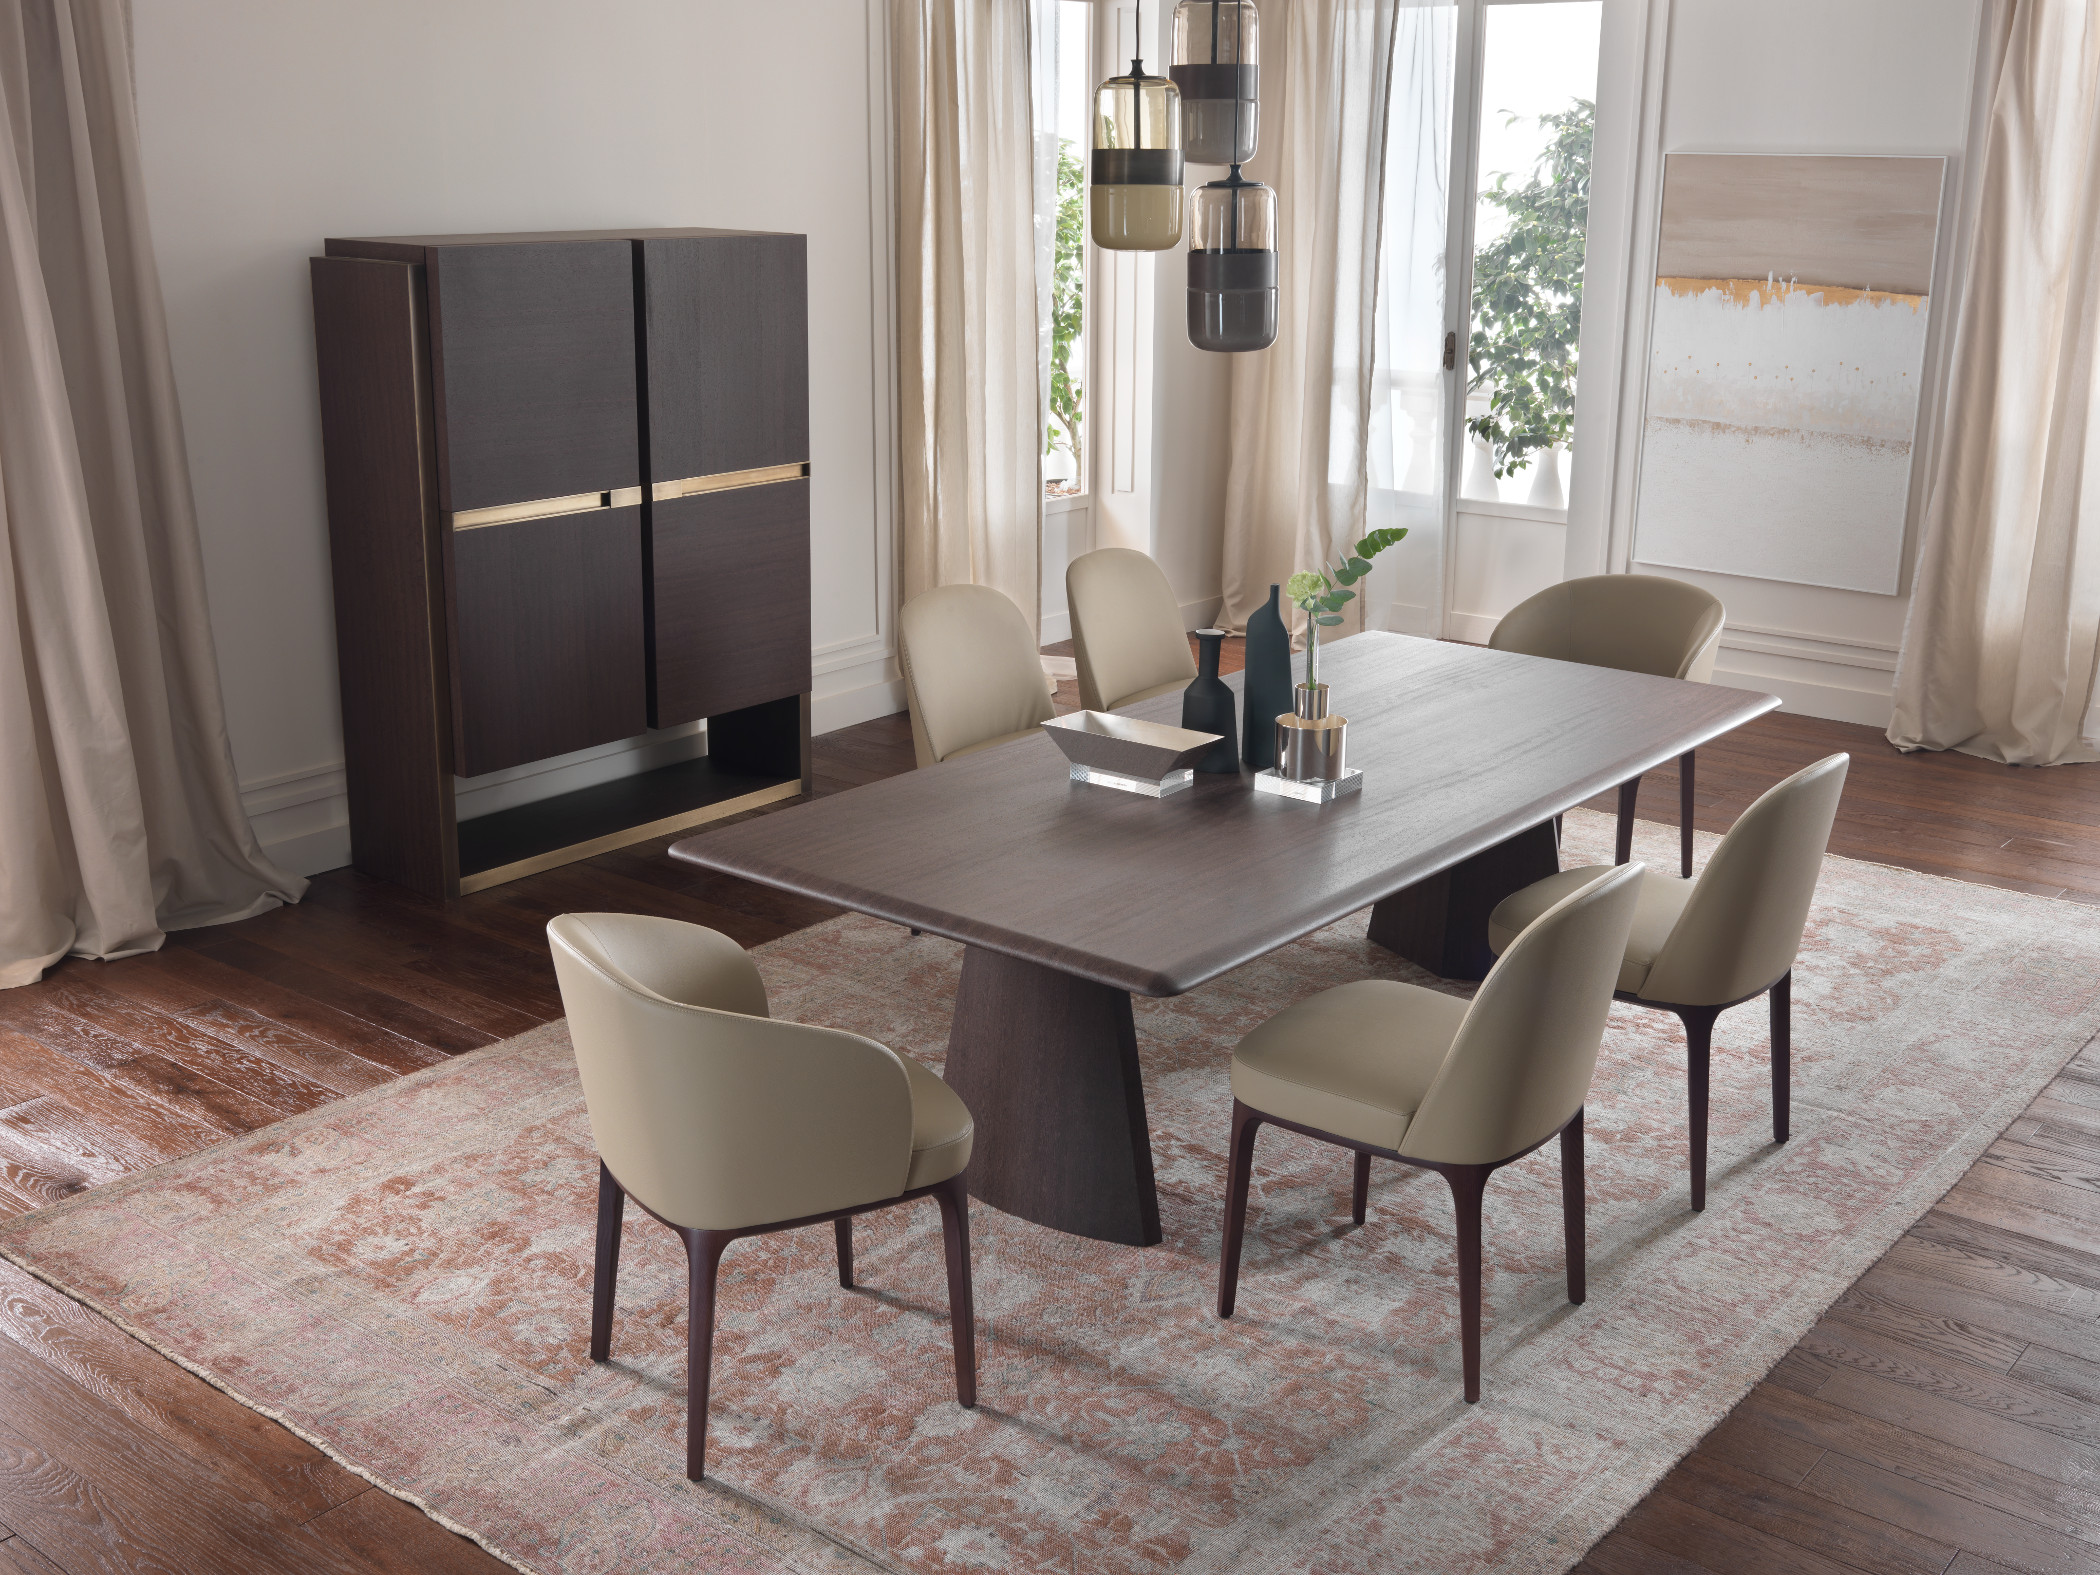 Poltroncine luxury marelli outlet for Poltroncine